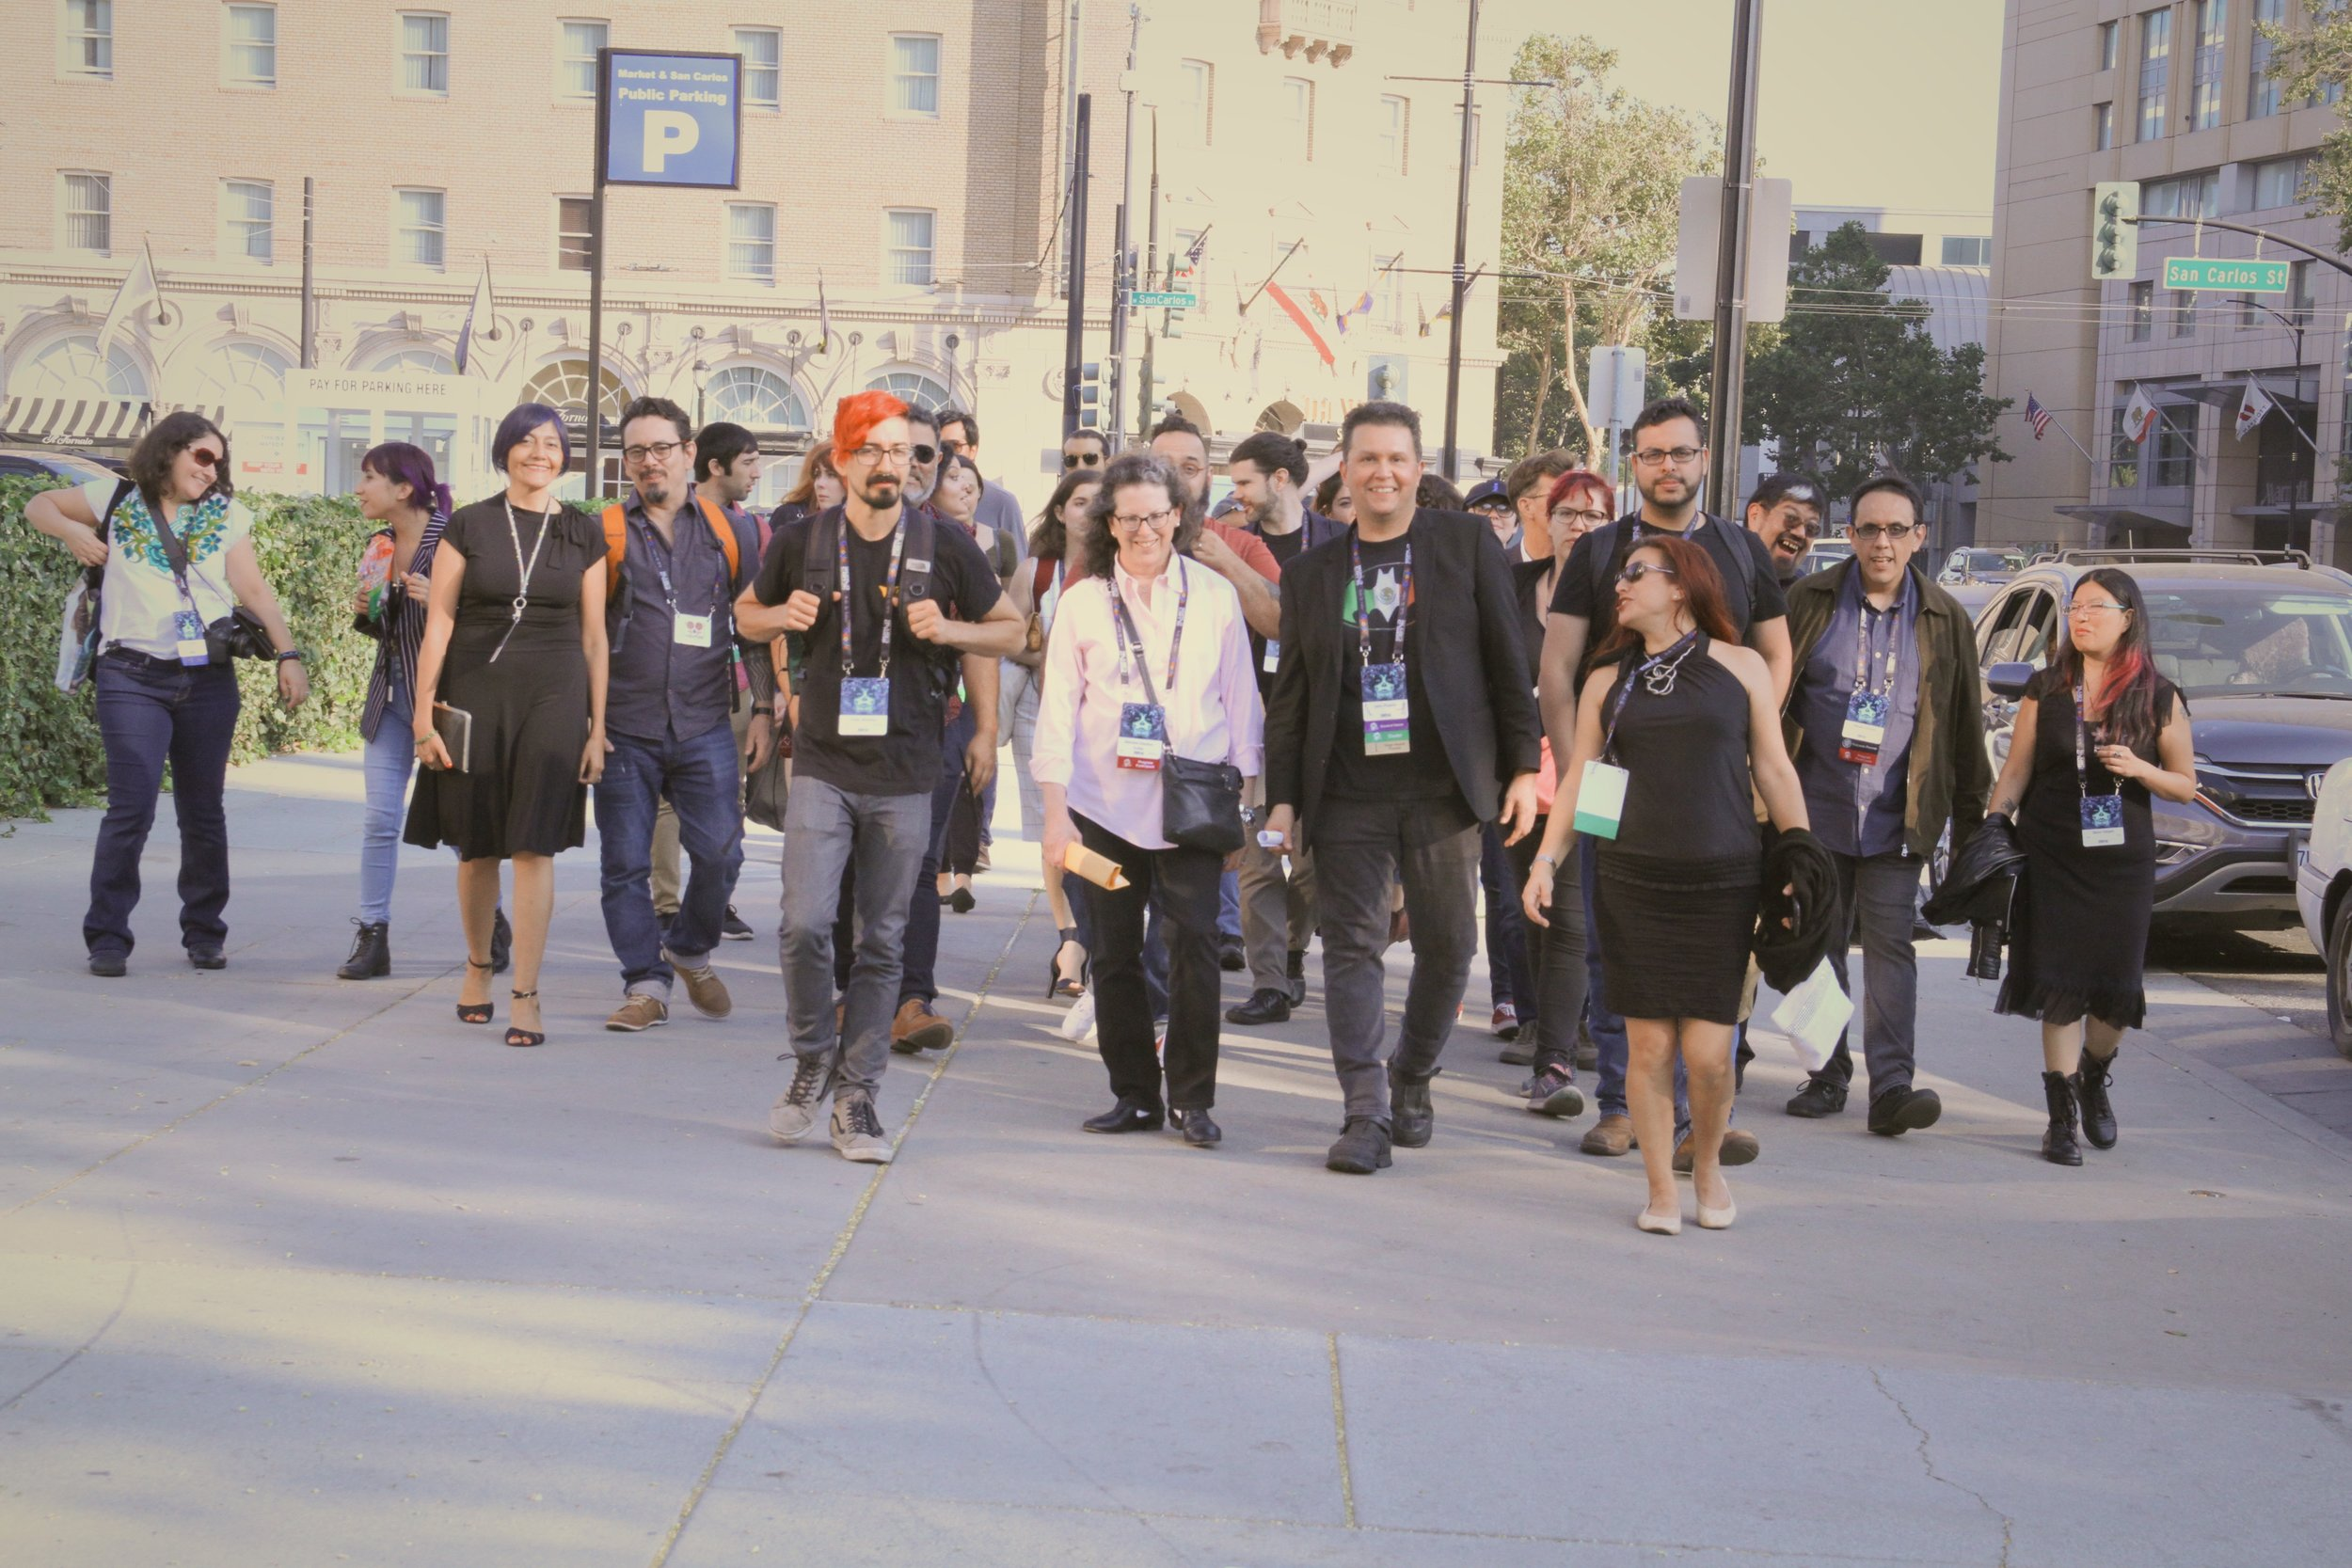 Mexicanx Initiative participants walking as a group in San Jose (Copyright 2018 Richard Canfield)